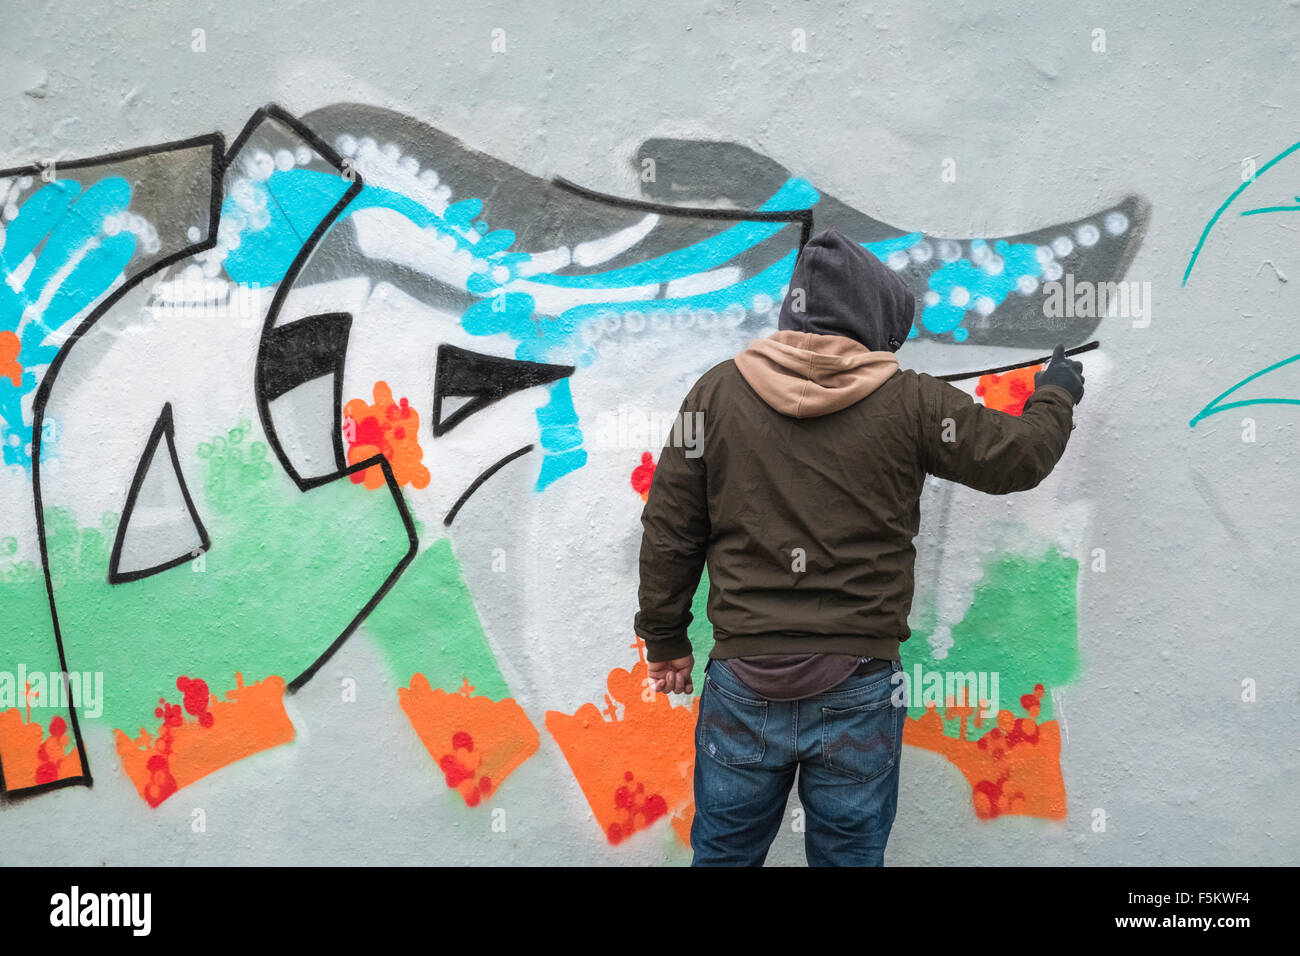 Graffiti Artist Spray Painting Part Of Former Berlin Wall Mauerpark Stock Photo Royalty Free